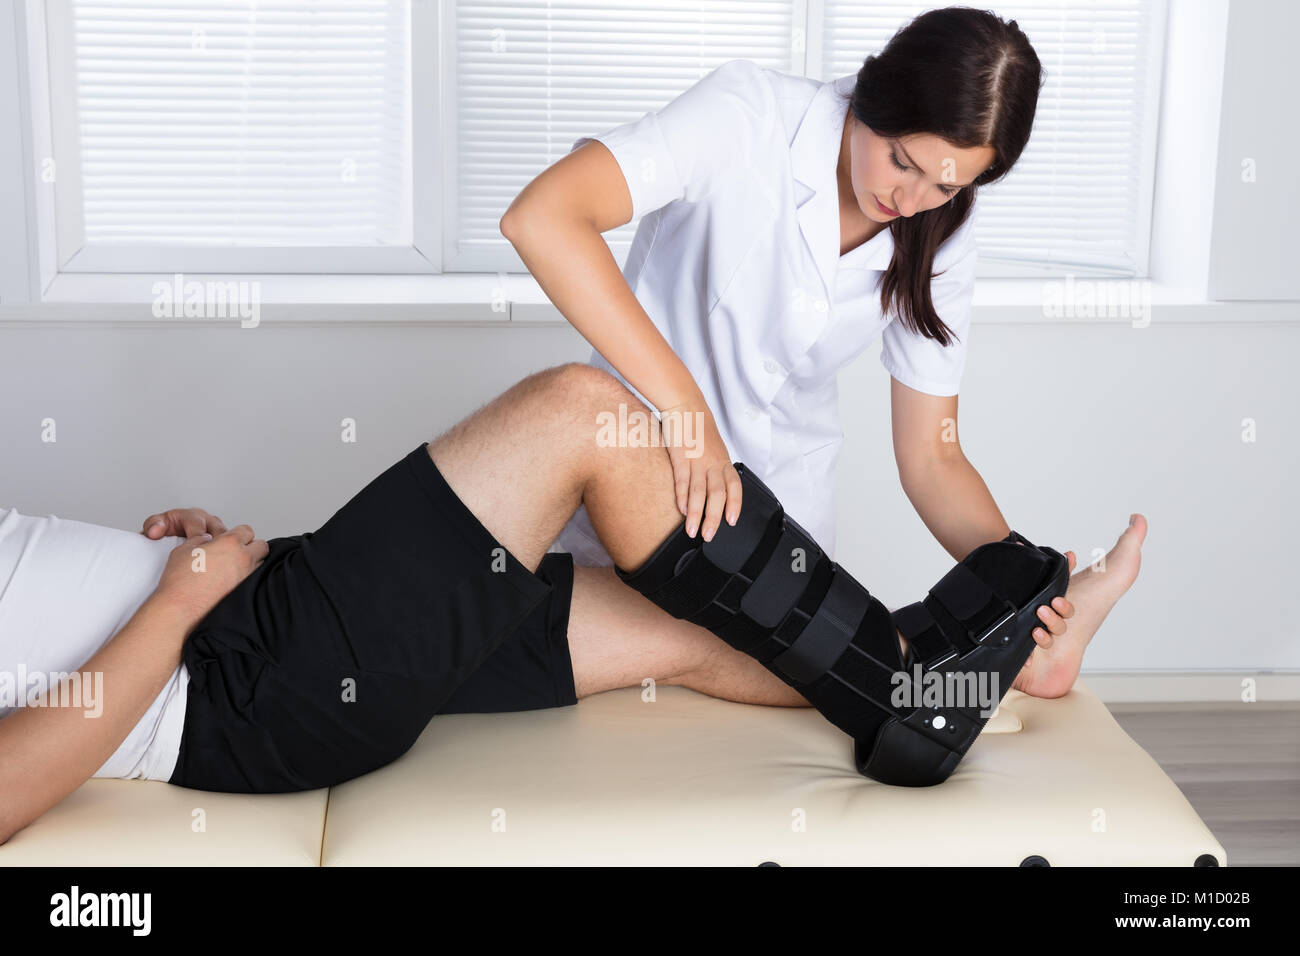 Young Female Orthopedist Adjusting Walking Brace On Patient's Leg In Clinic - Stock Image